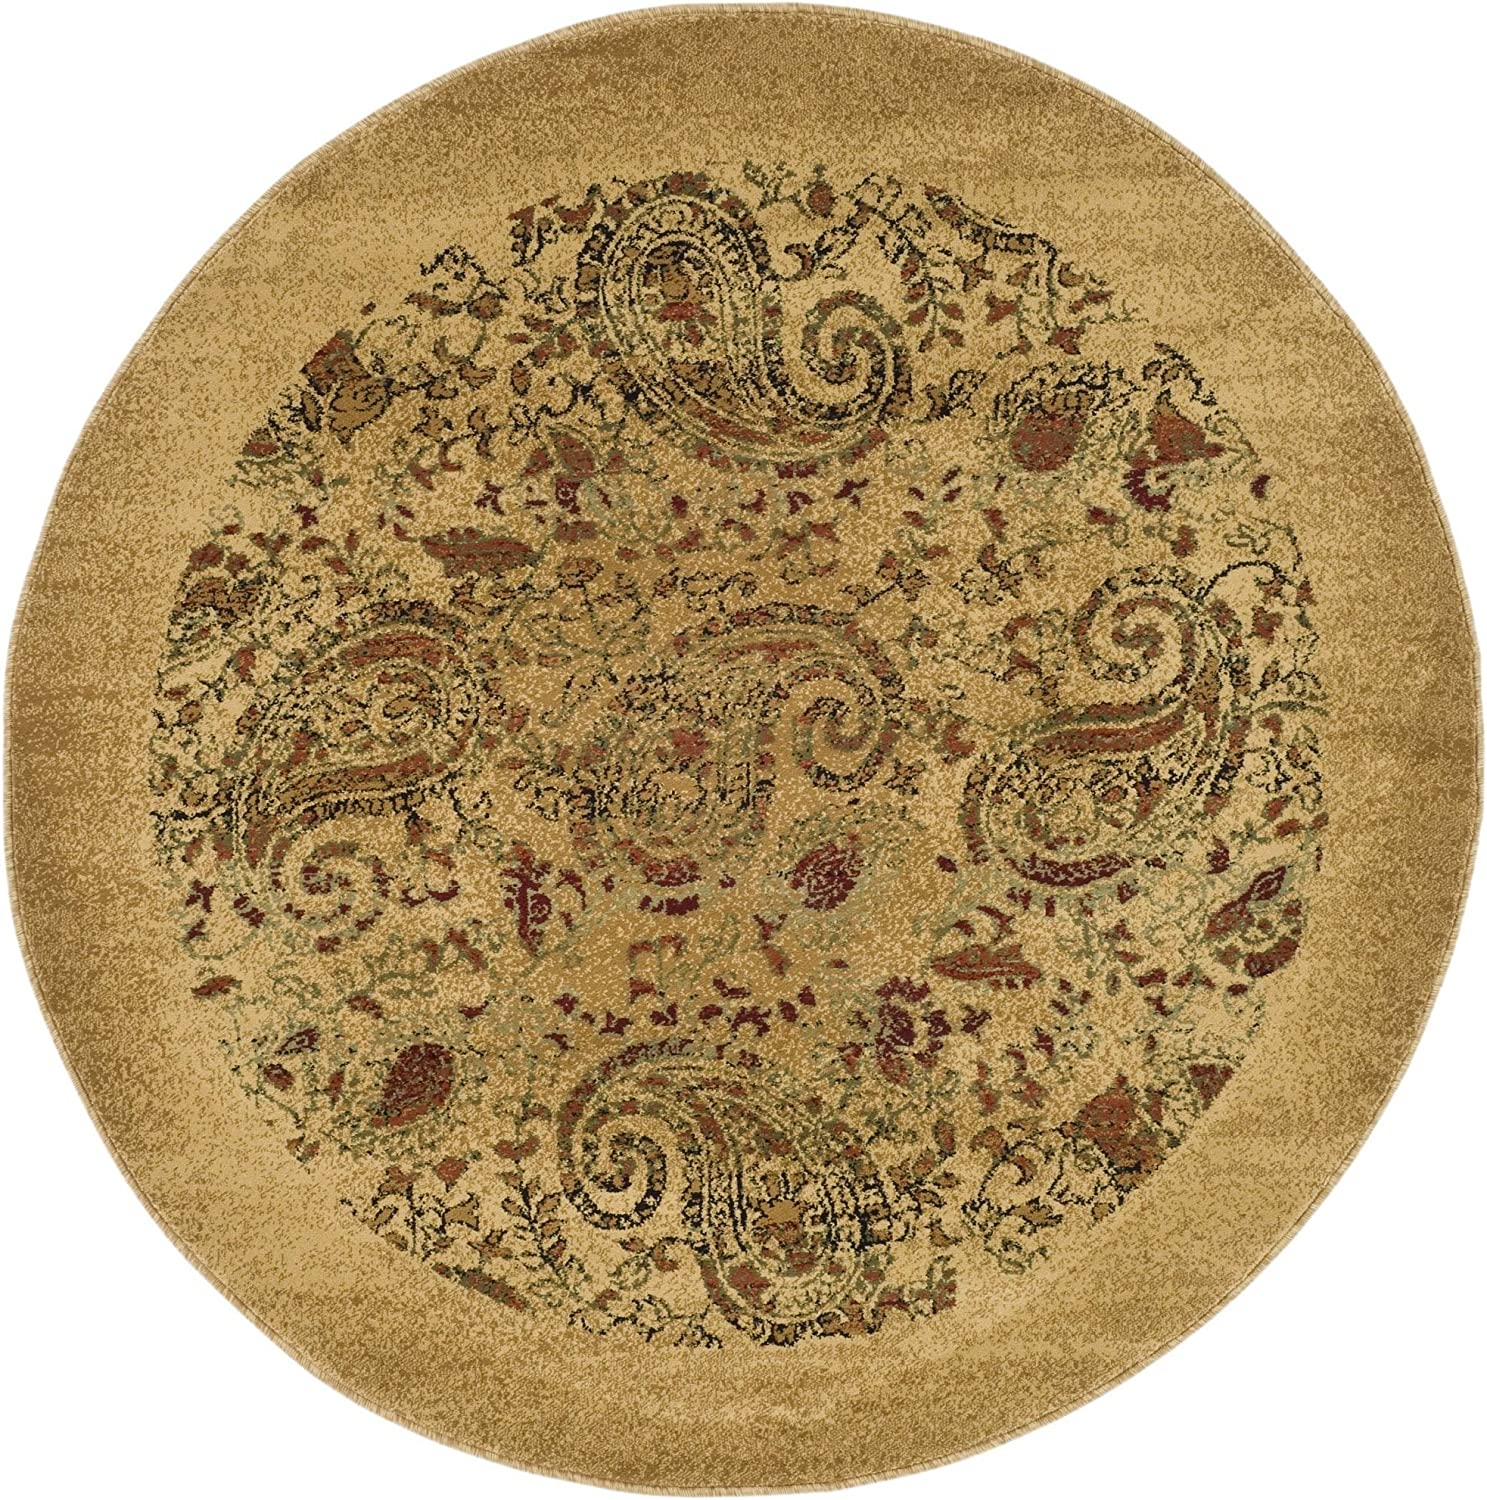 Safavieh Lyndhurst Collection LNH224A Traditional Paisley Beige and Multi Round Area Rug (8' Diameter)